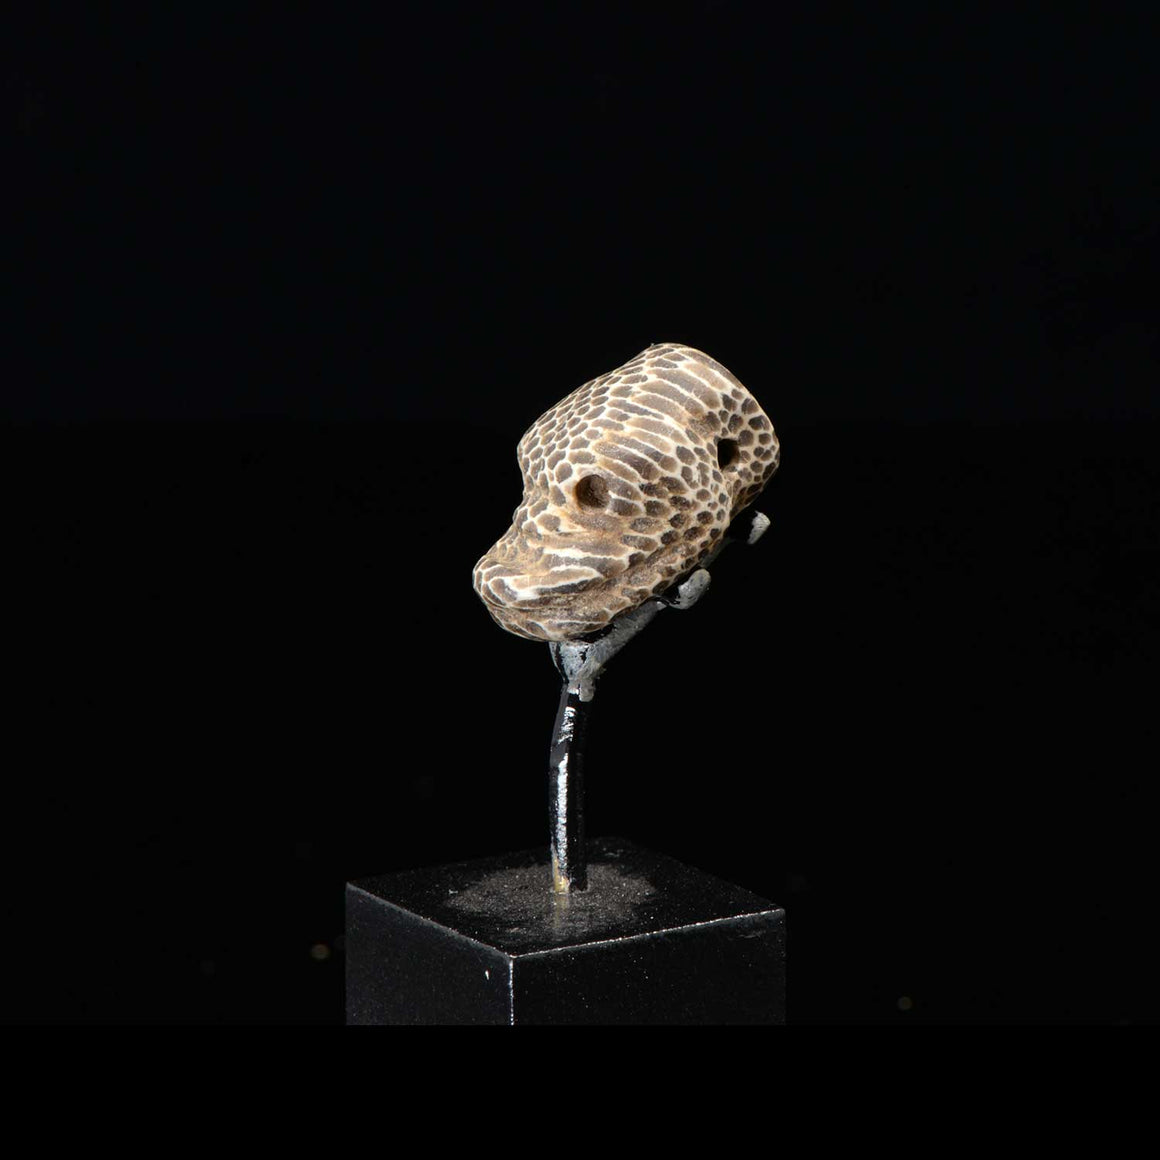 * A superb Near Eastern Snake Head Amulet, Achaemenid Period, ca. 550 - 330 BCE - Sands of Time Ancient Art